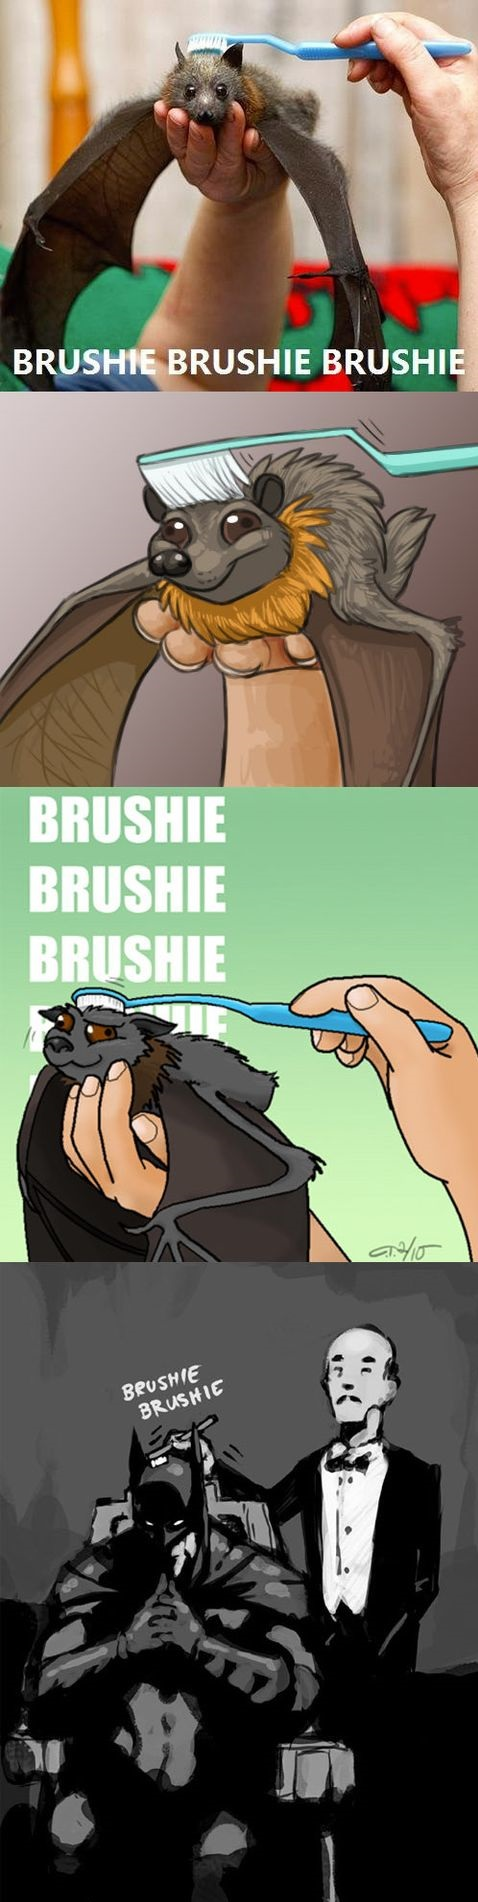 funny-picture-brush-batman